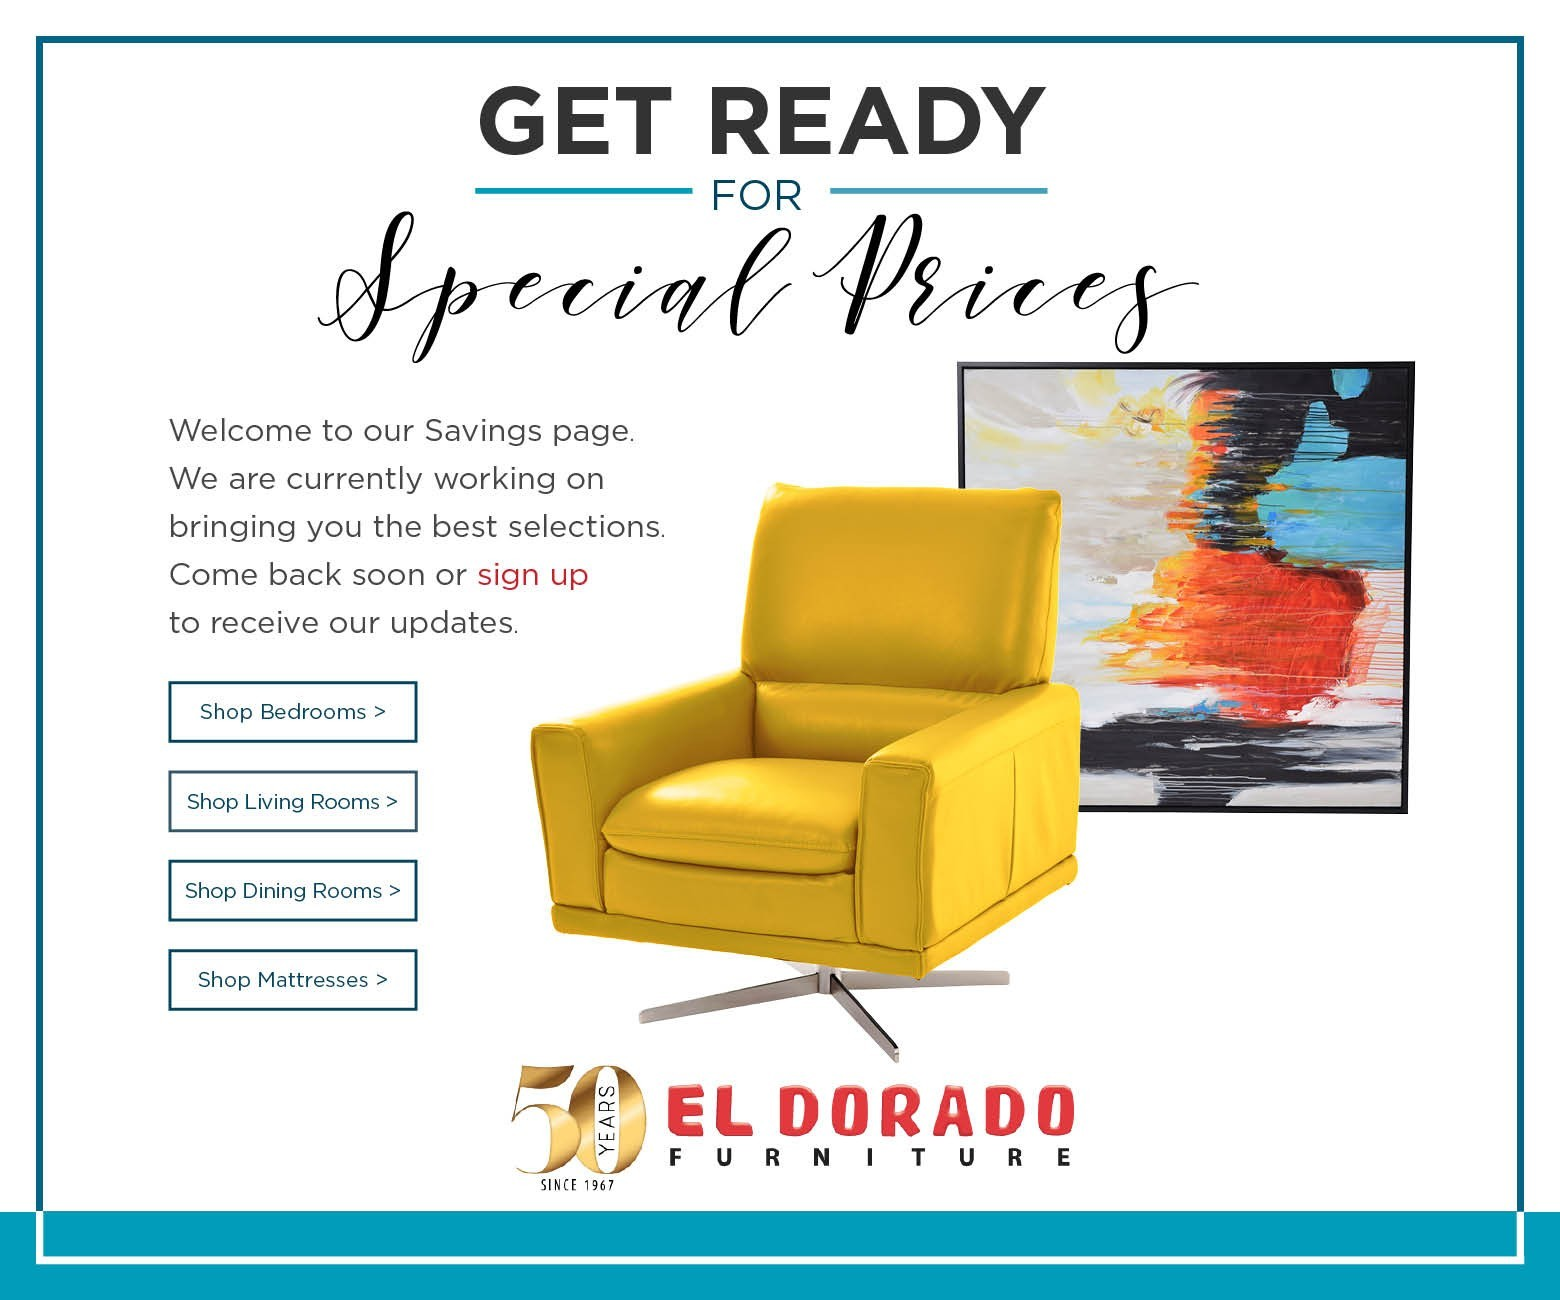 El dorado furniture outlet miami - Get Ready For Special Prices Welcome To Our Savings Page We Are Currently Working